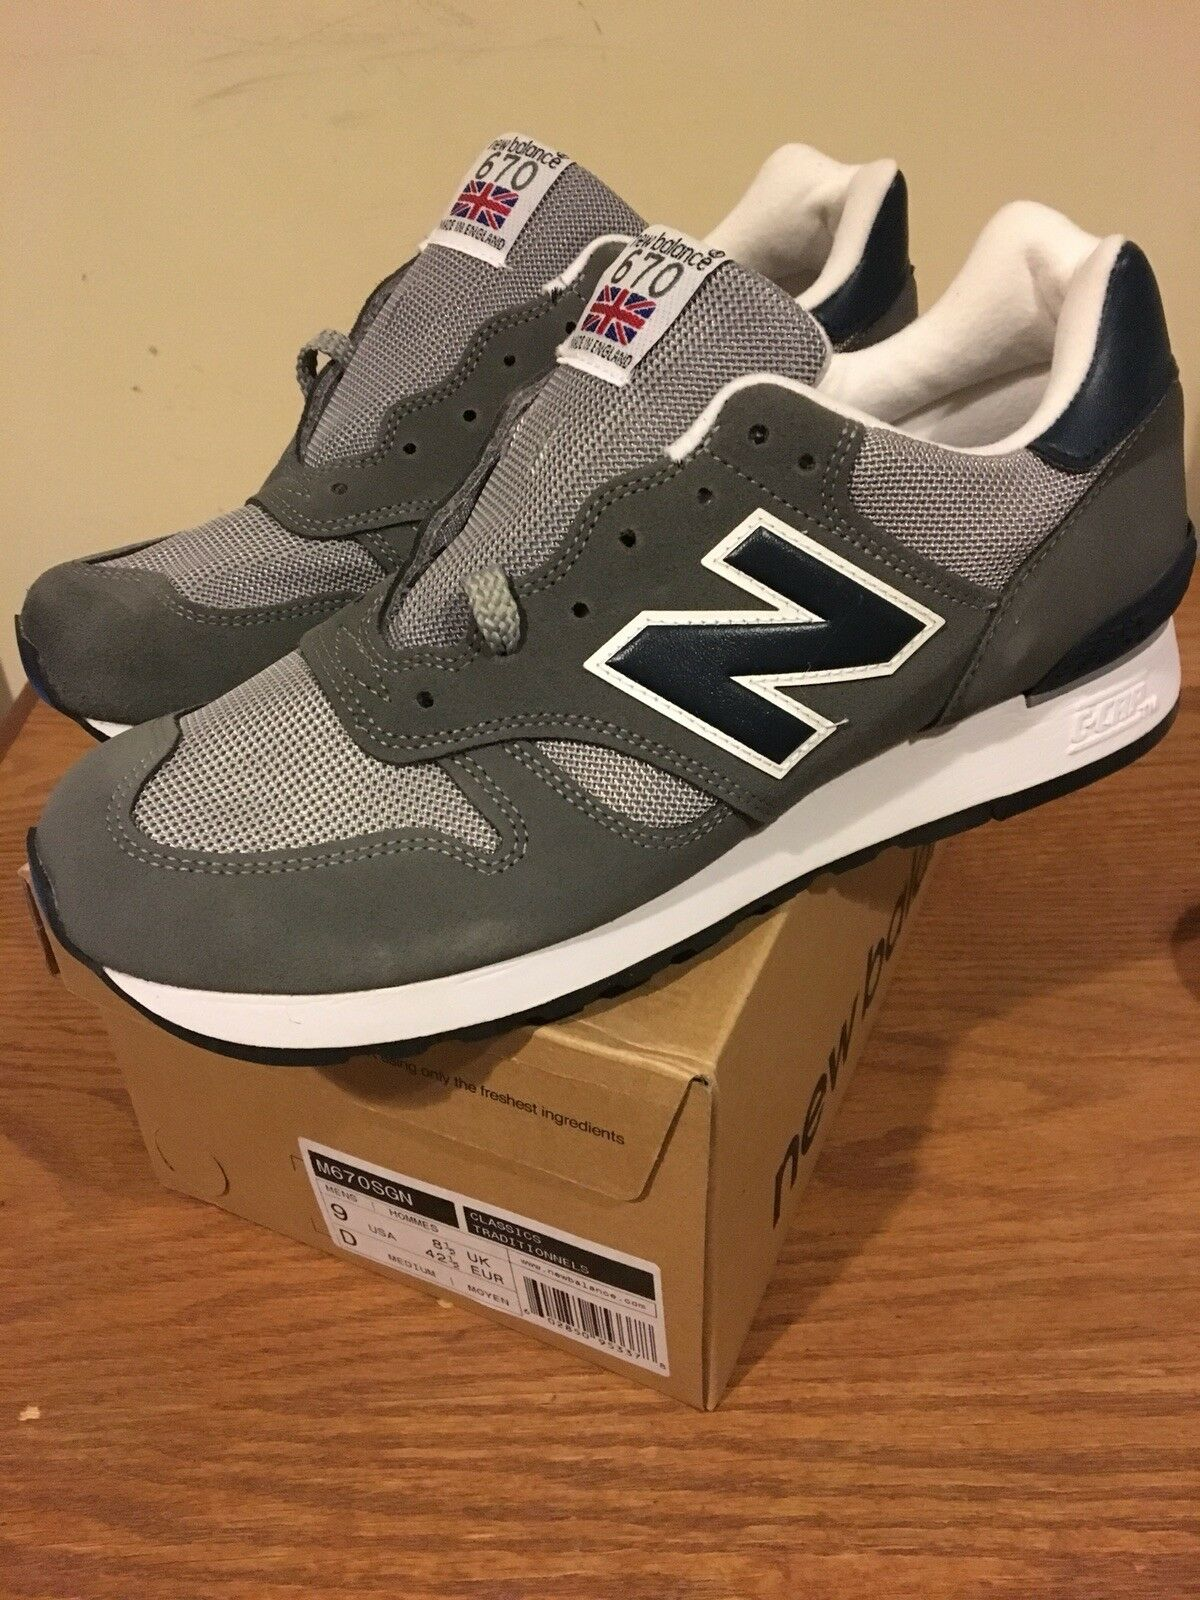 New Balance 670 SGN Grey Size 9 Made In England New